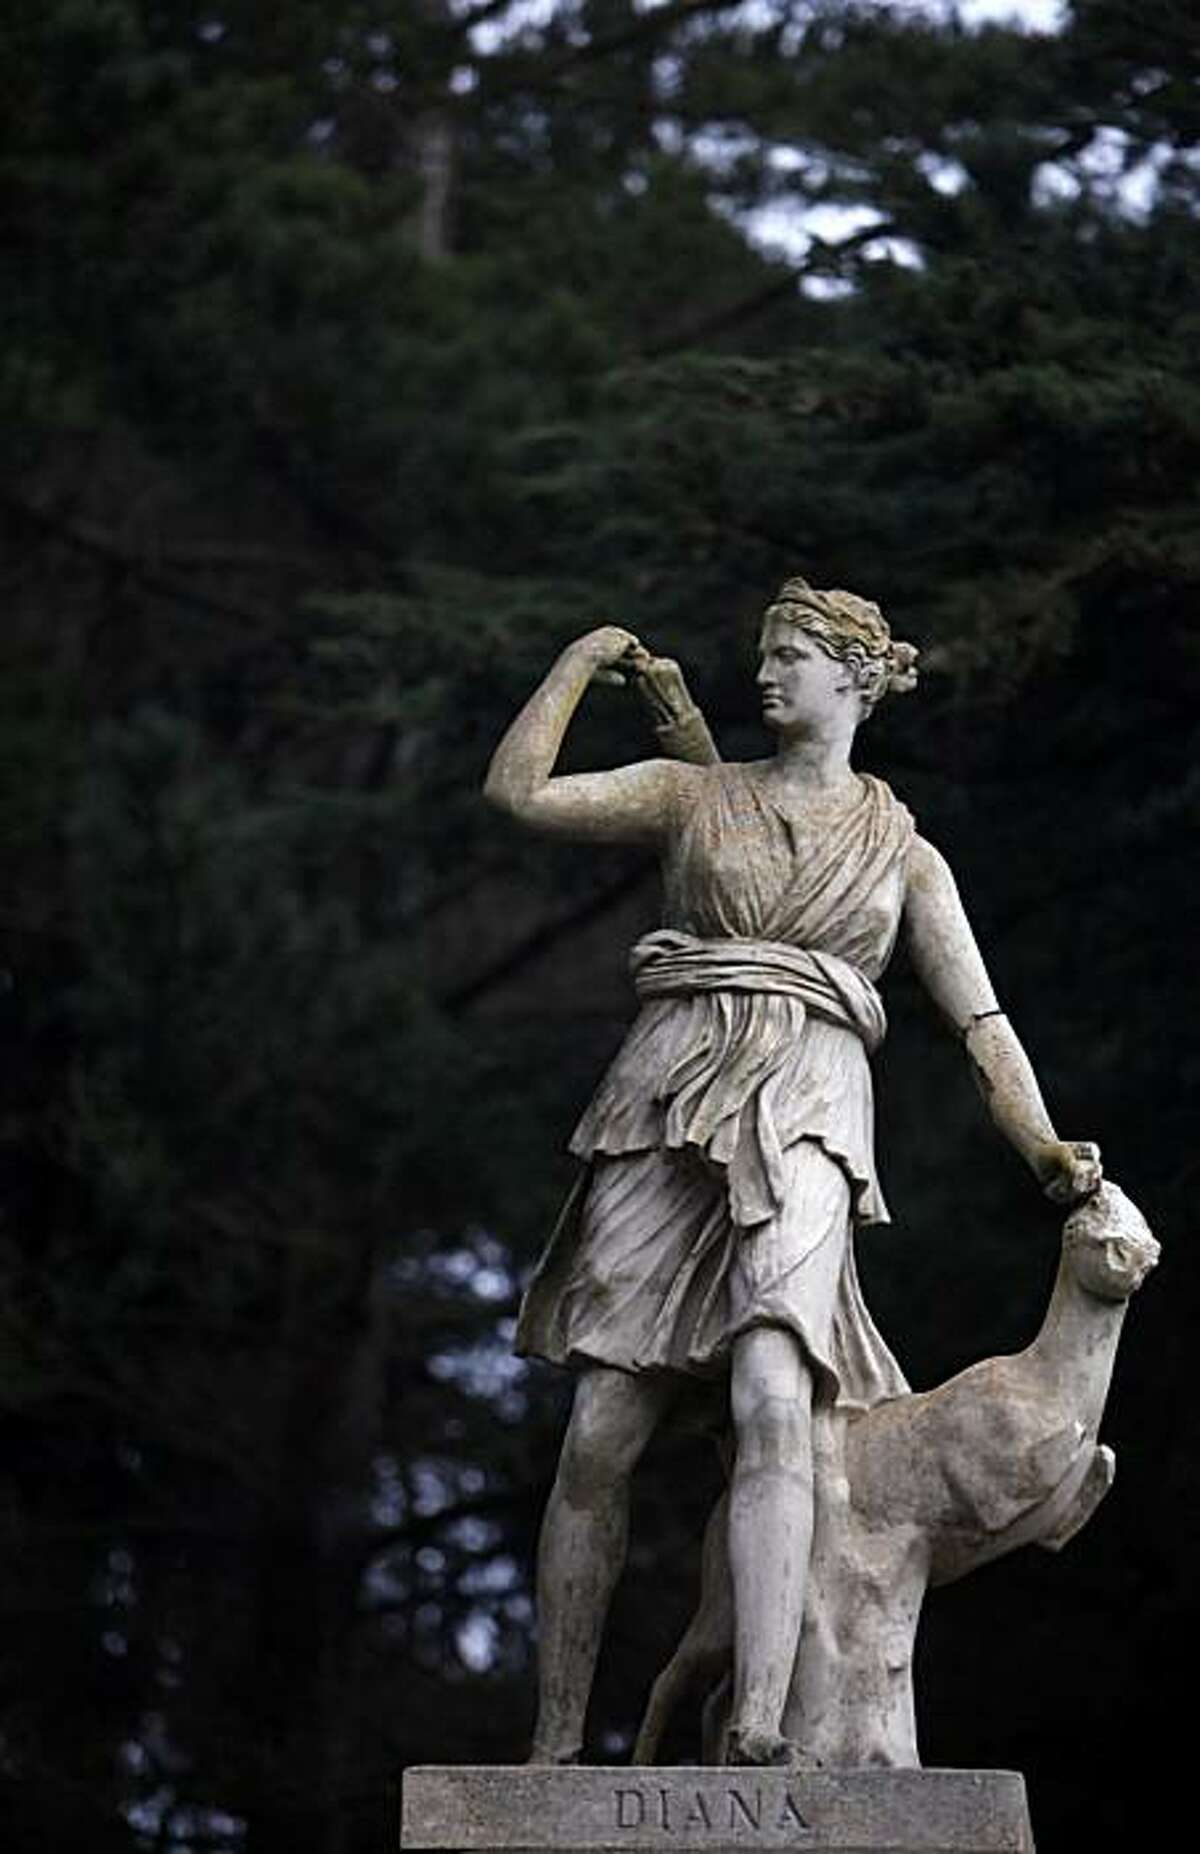 Diana the Huntress statue in Sutro Heights Park. In 1885 Adolph Sutro opened the Heights to the public who were encouraged to wander the gardens, breath the sea air and gaze at the exploding waves. In the 1920s Sutro Heights was given to the city, and today it is managed by the Golden Gate National Recreation Area as Sutro Heights Park.